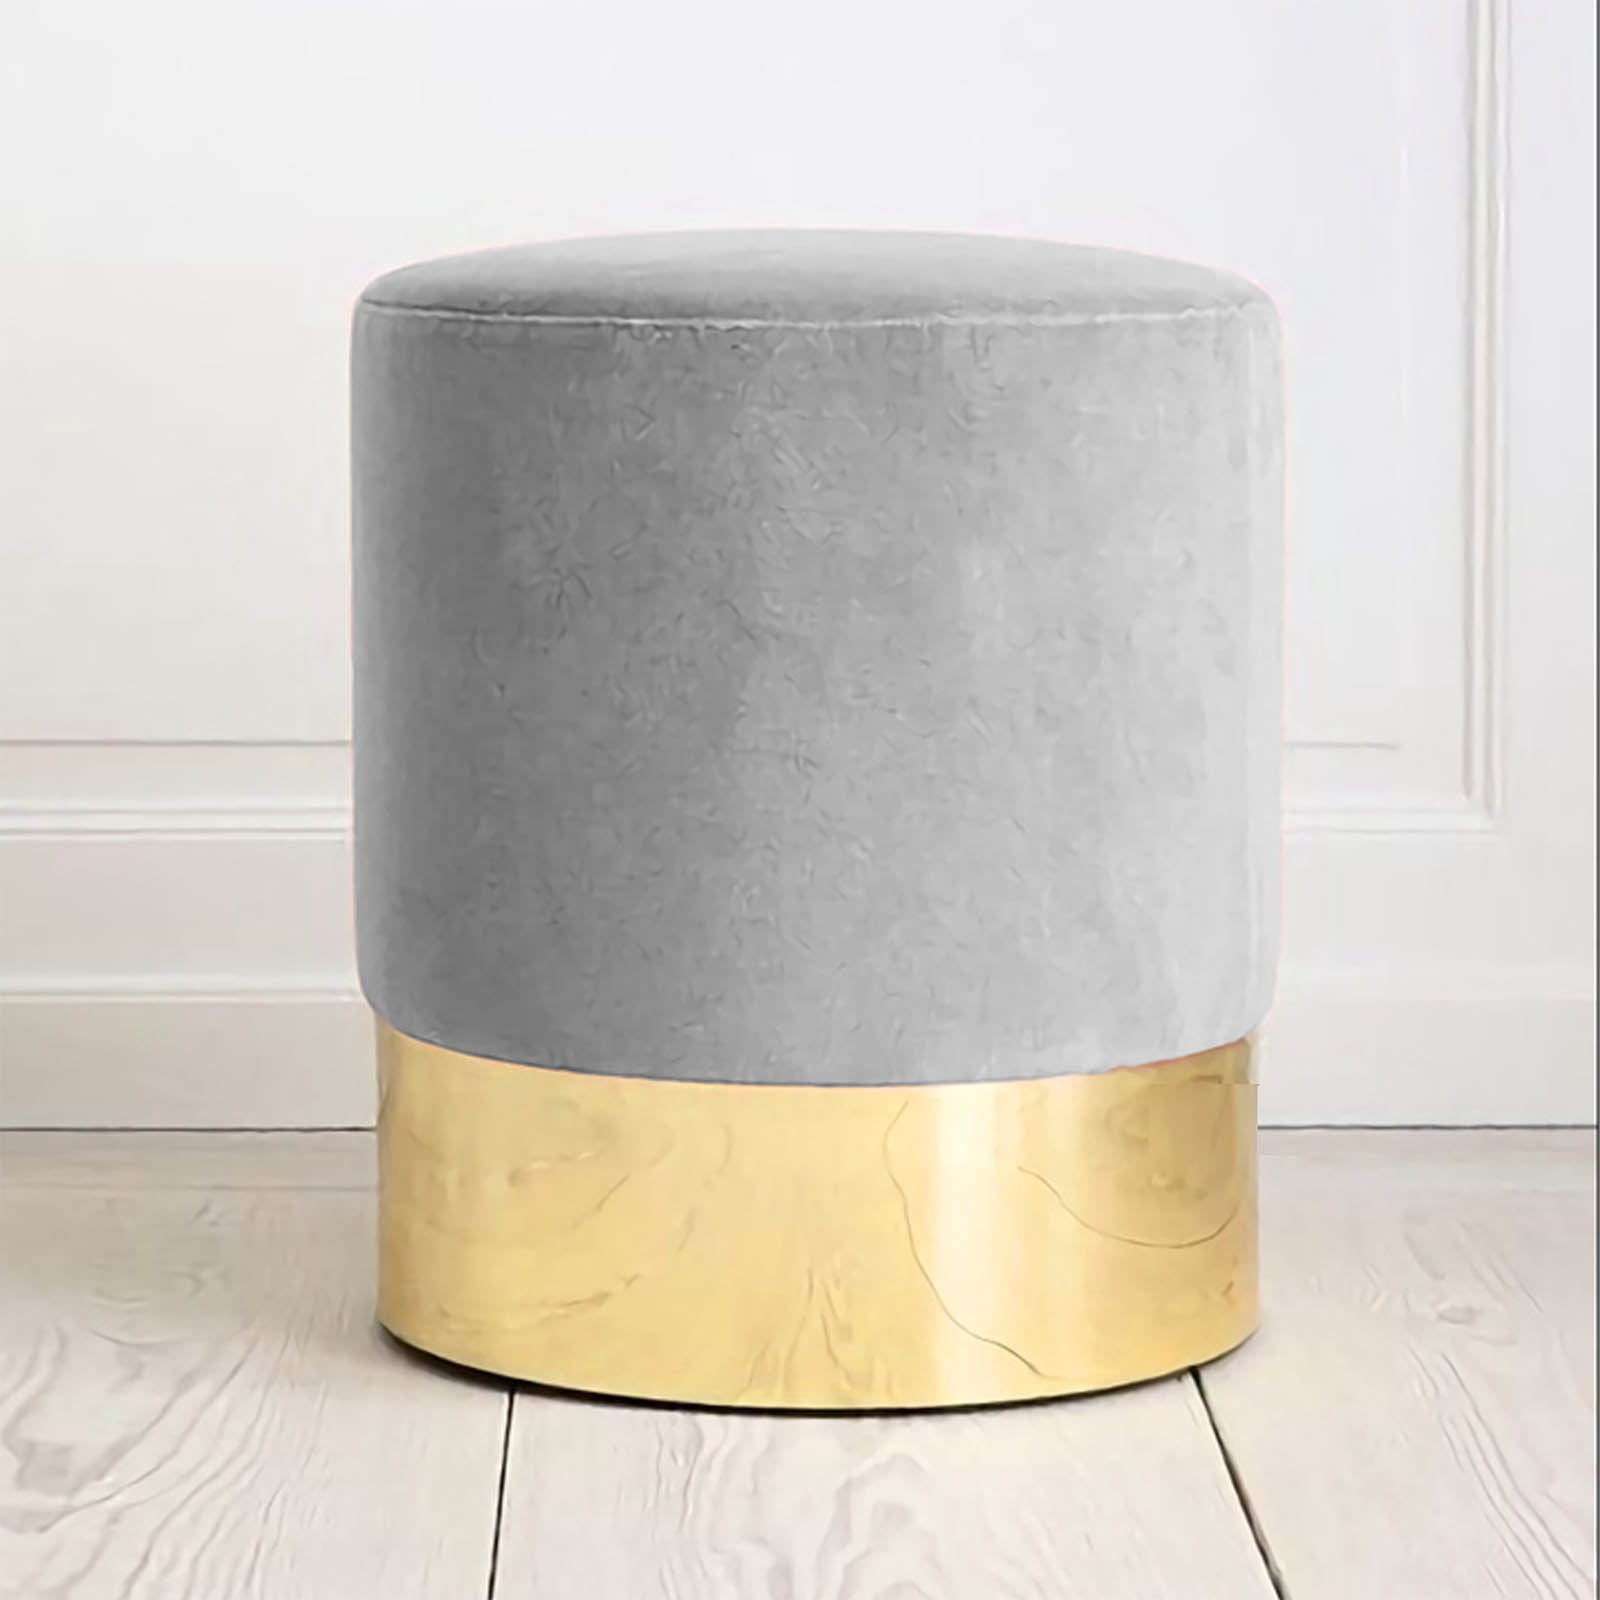 Velletri  Stool TG-196-Grey -  مقعد فيليتري - Shop Online Furniture and Home Decor Store in Dubai, UAE at ebarza